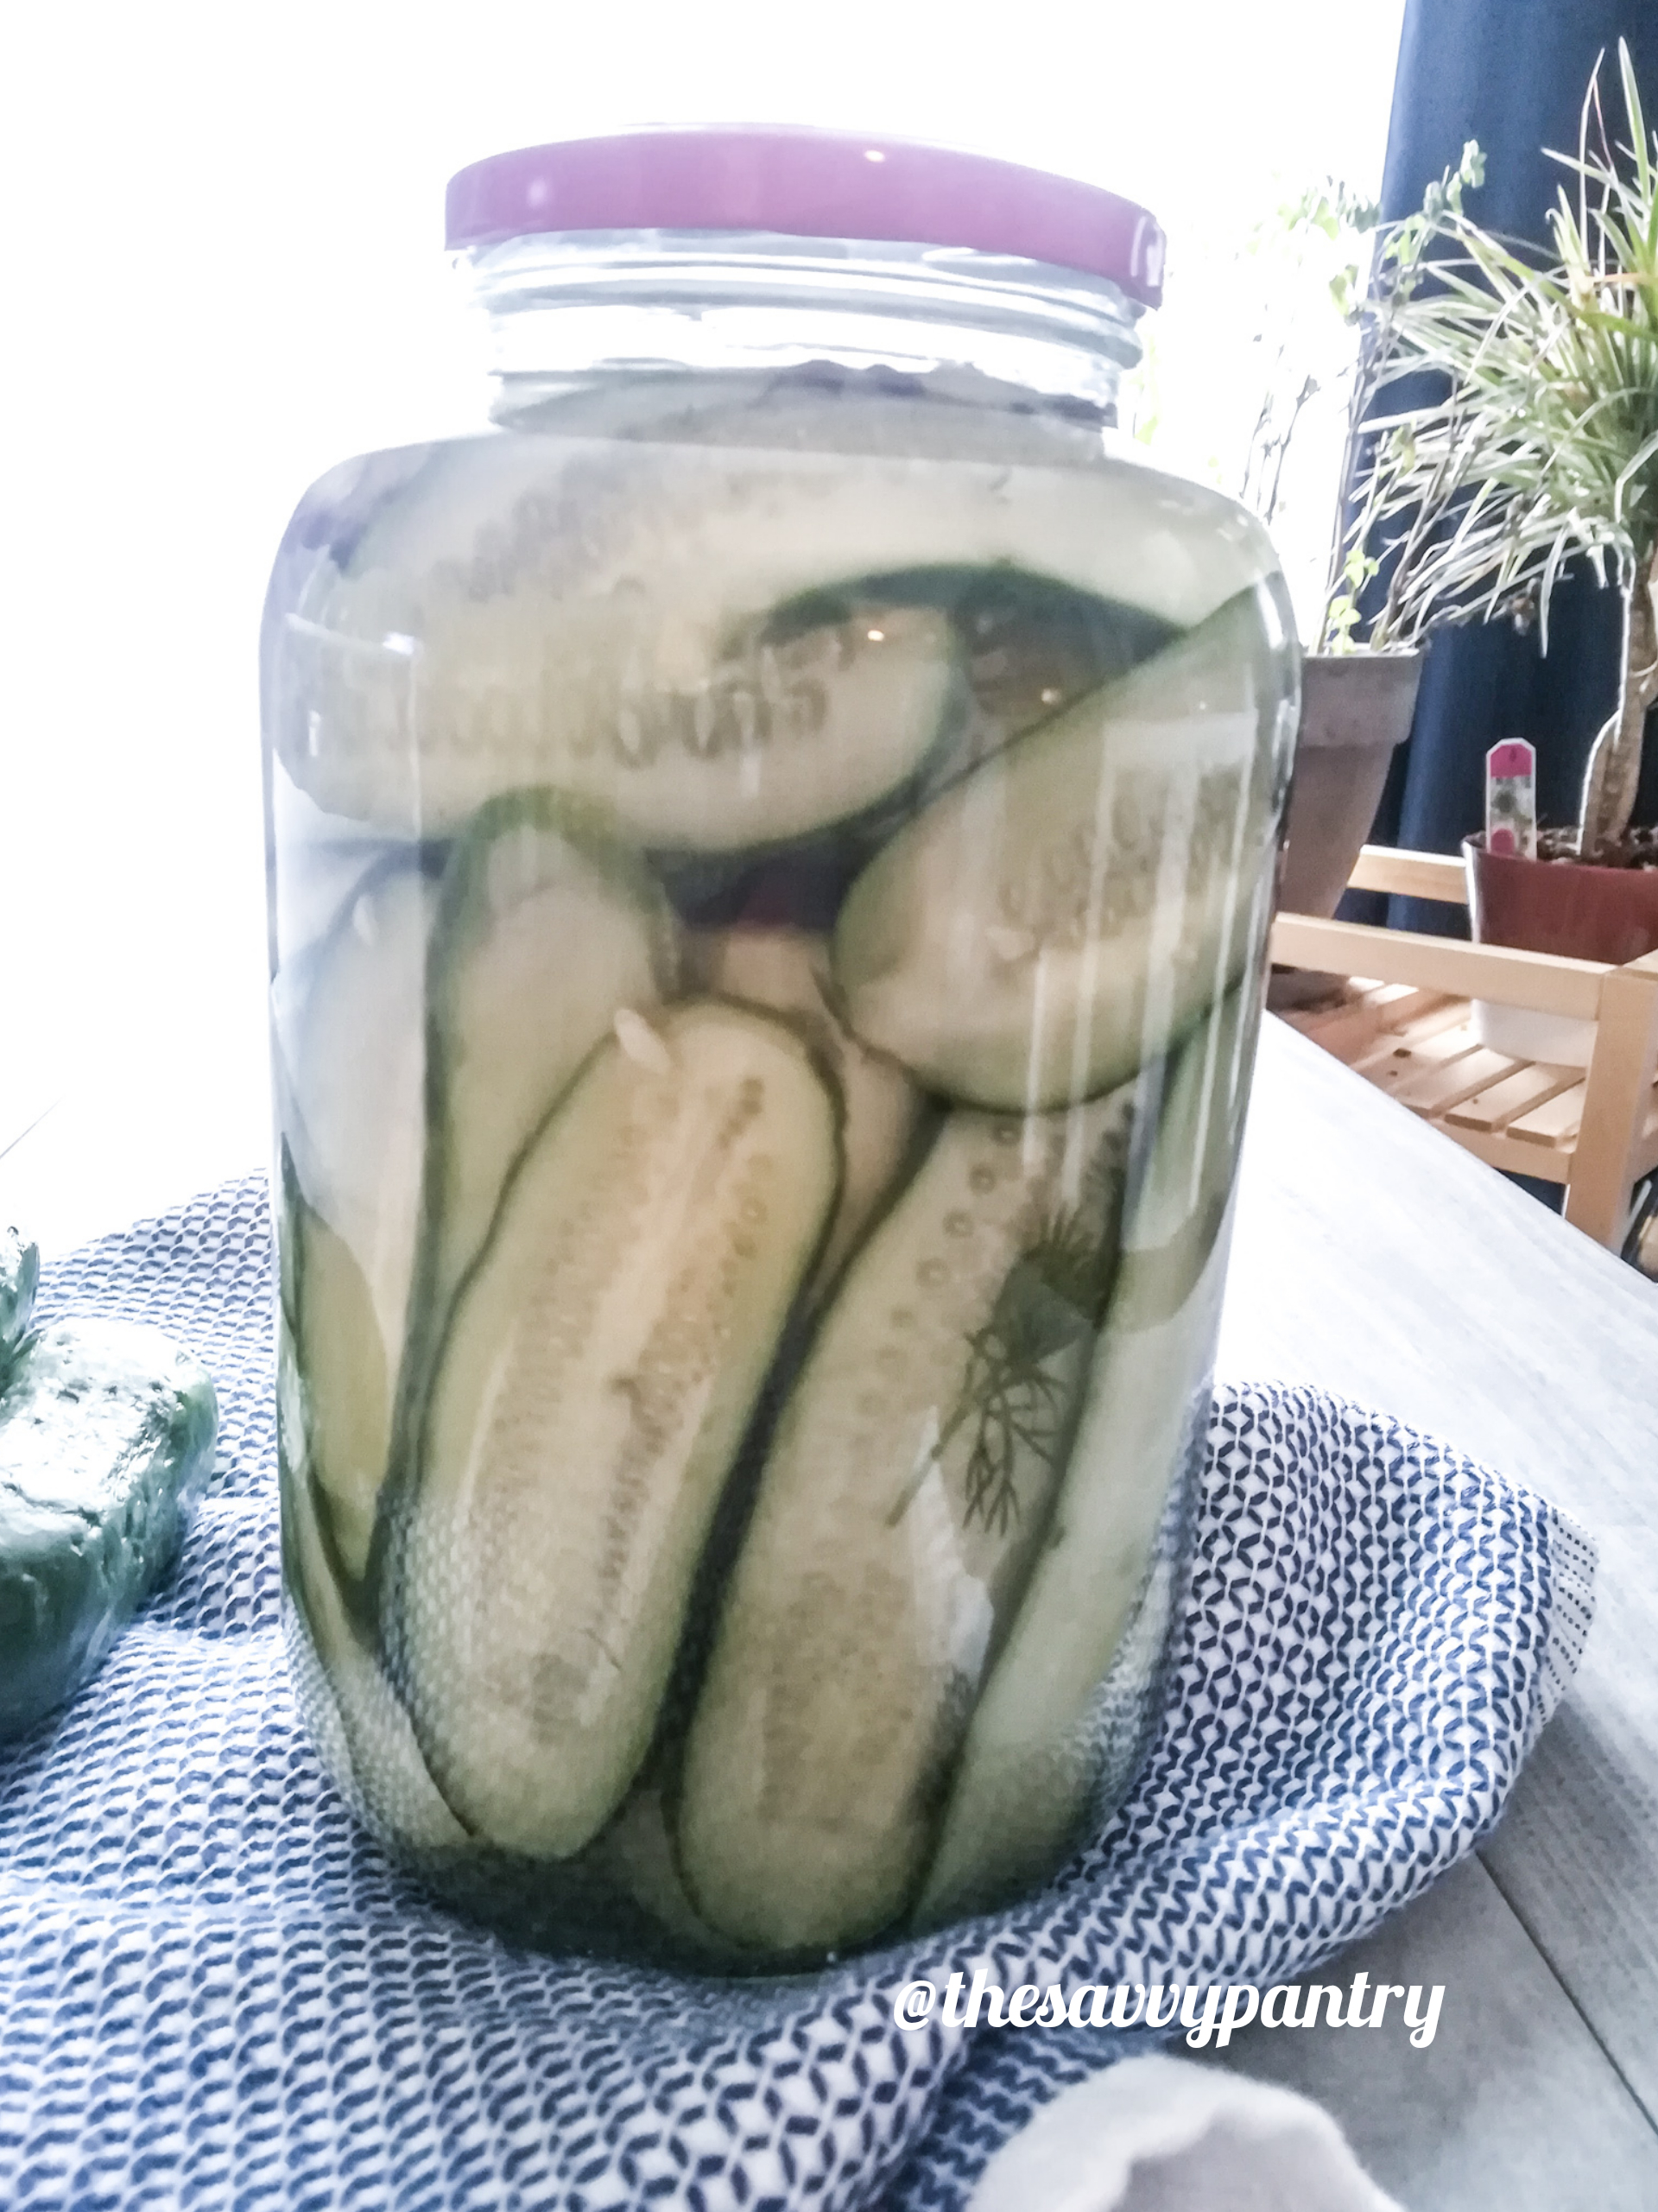 TheSavvyPantry-garlicdillpickles-02.jpg